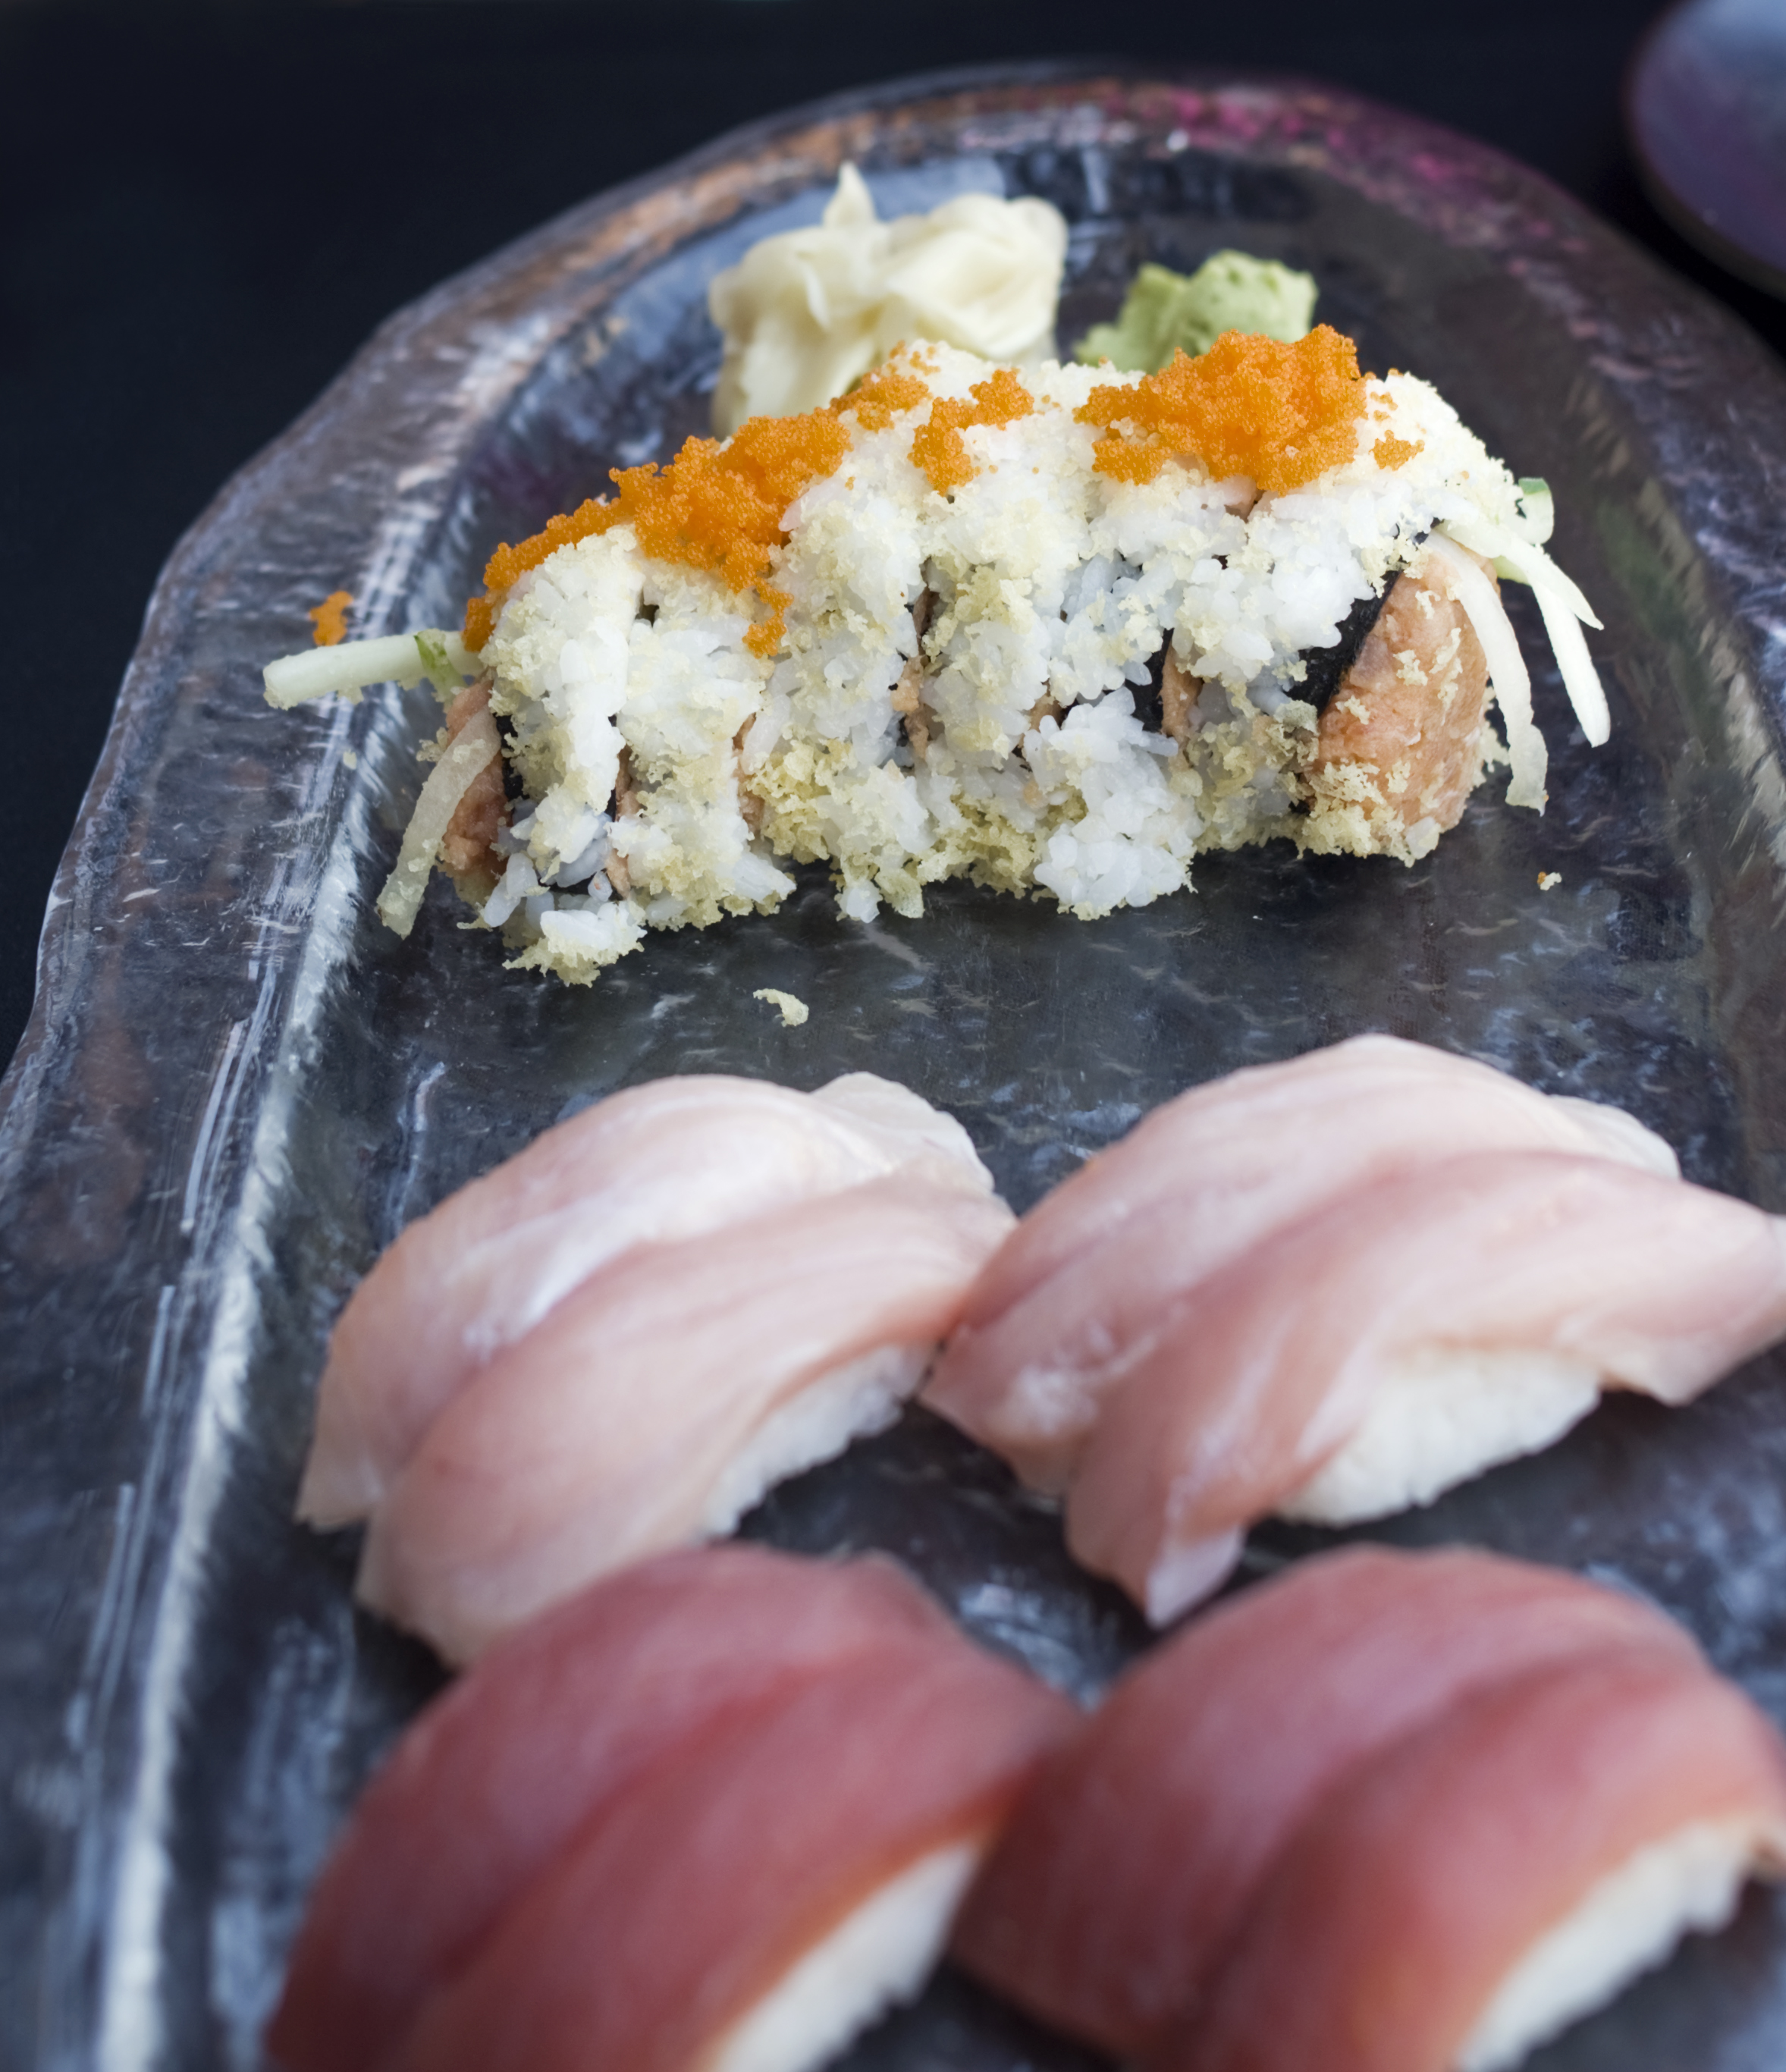 Fish eaters beware of the butterfish: your tummy may thank